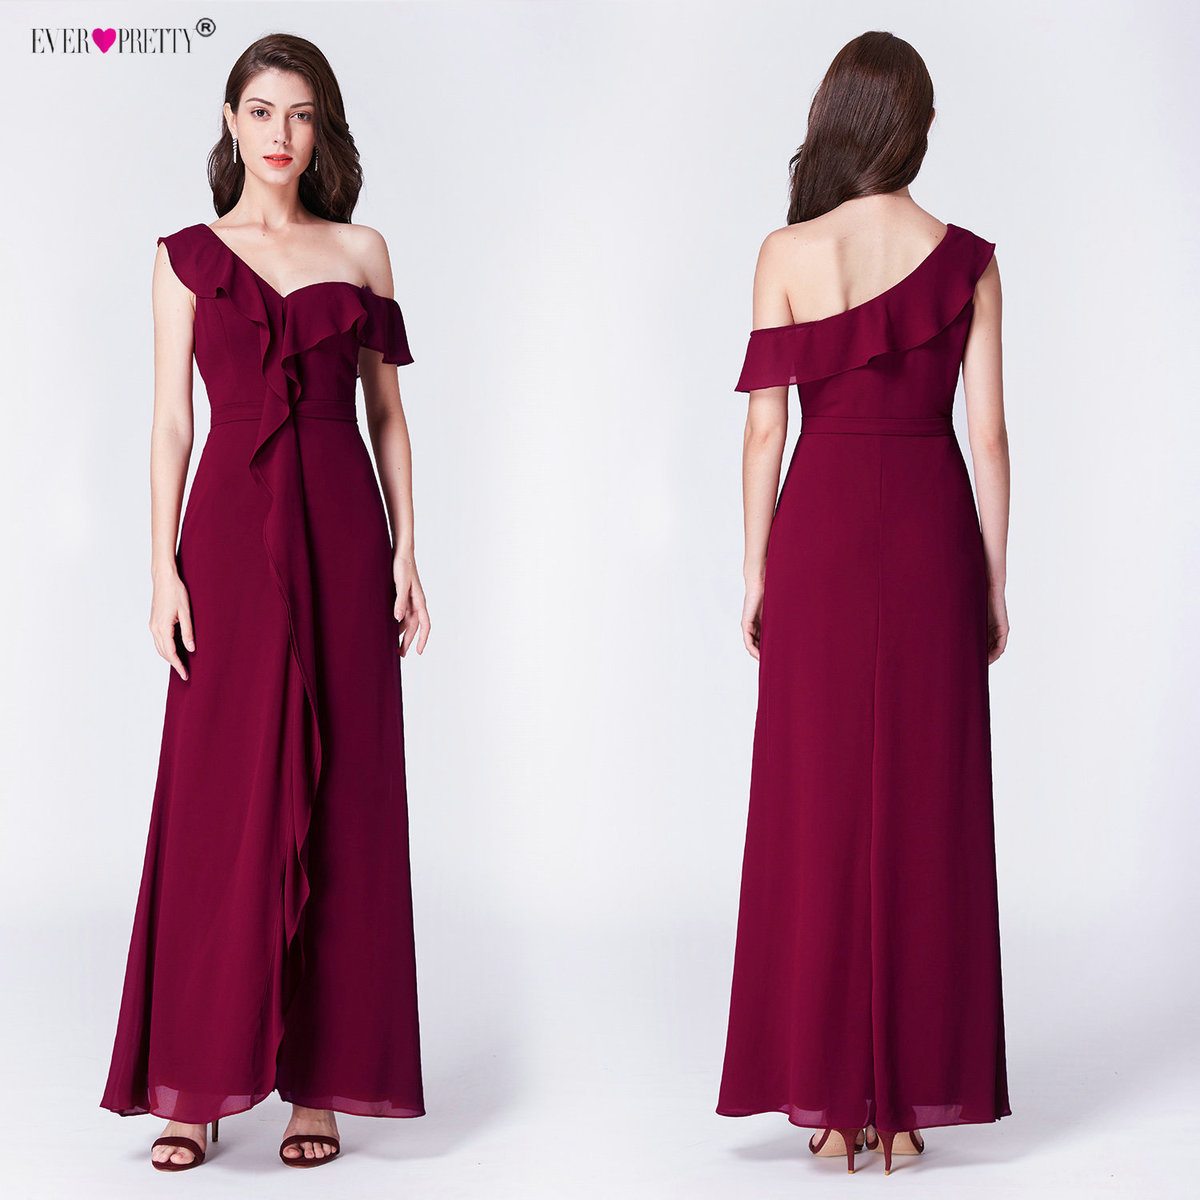 Burgundy Evening Dresses Ever Pretty Elegant Cheap A-Line Off Shoulder Chiffon Long 2018 Sexy Wedding Guest Gowns